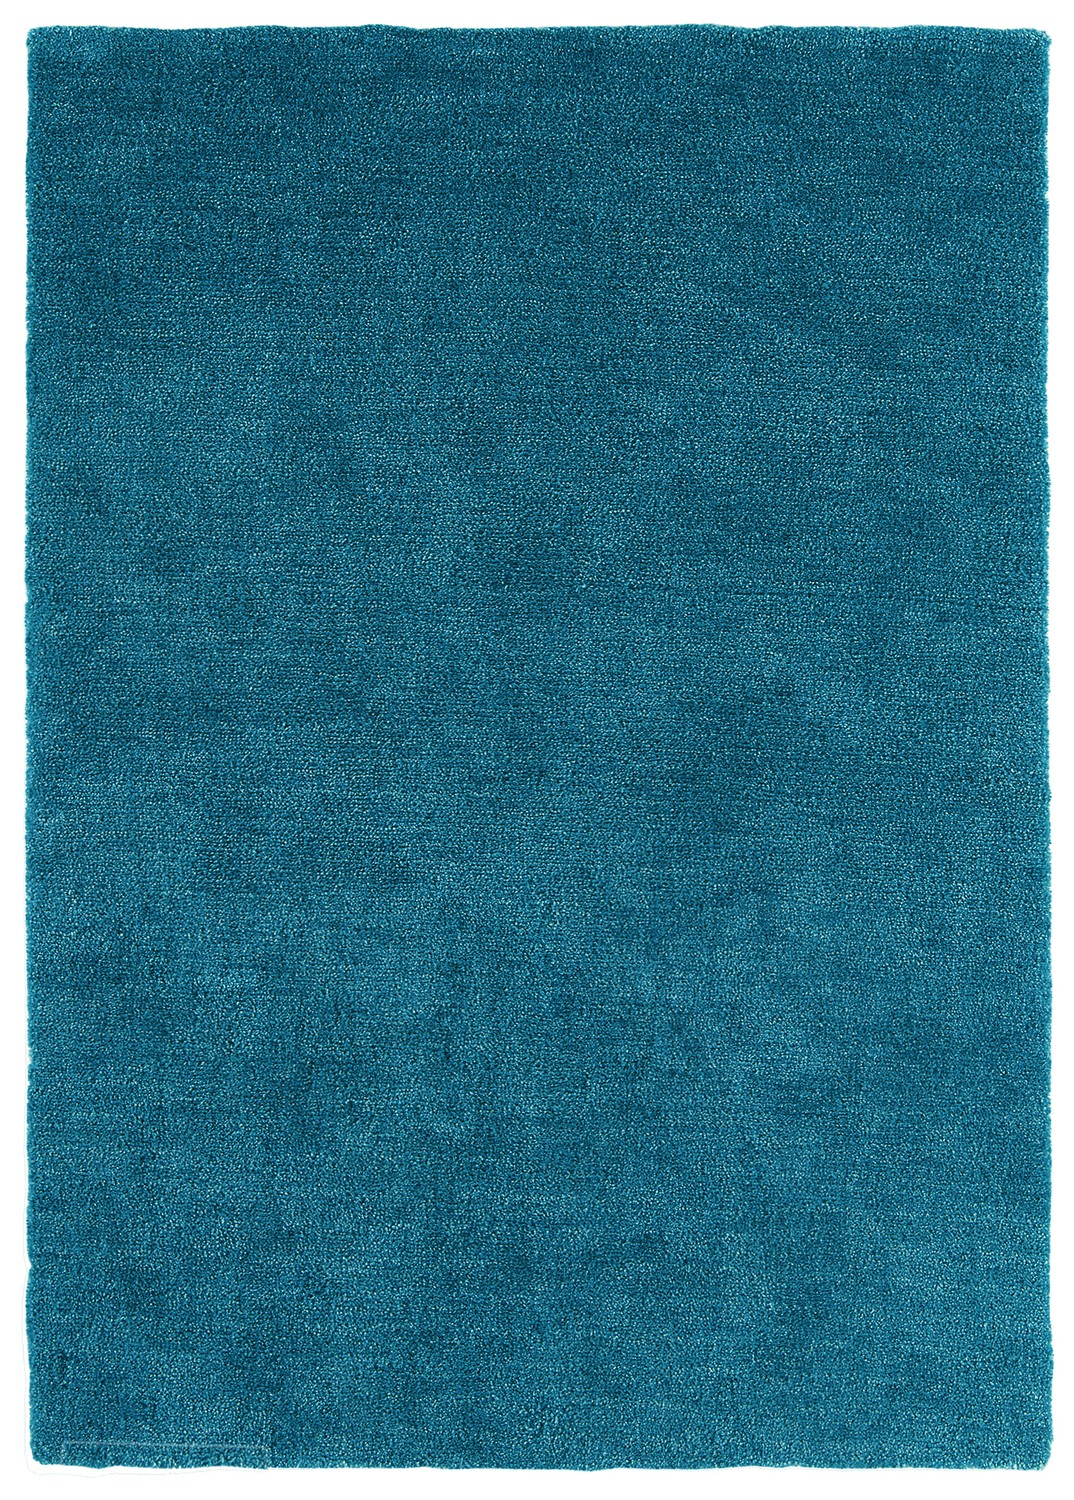 Asiatic Tula Dark Teal Teal Rug Best Prices And Free